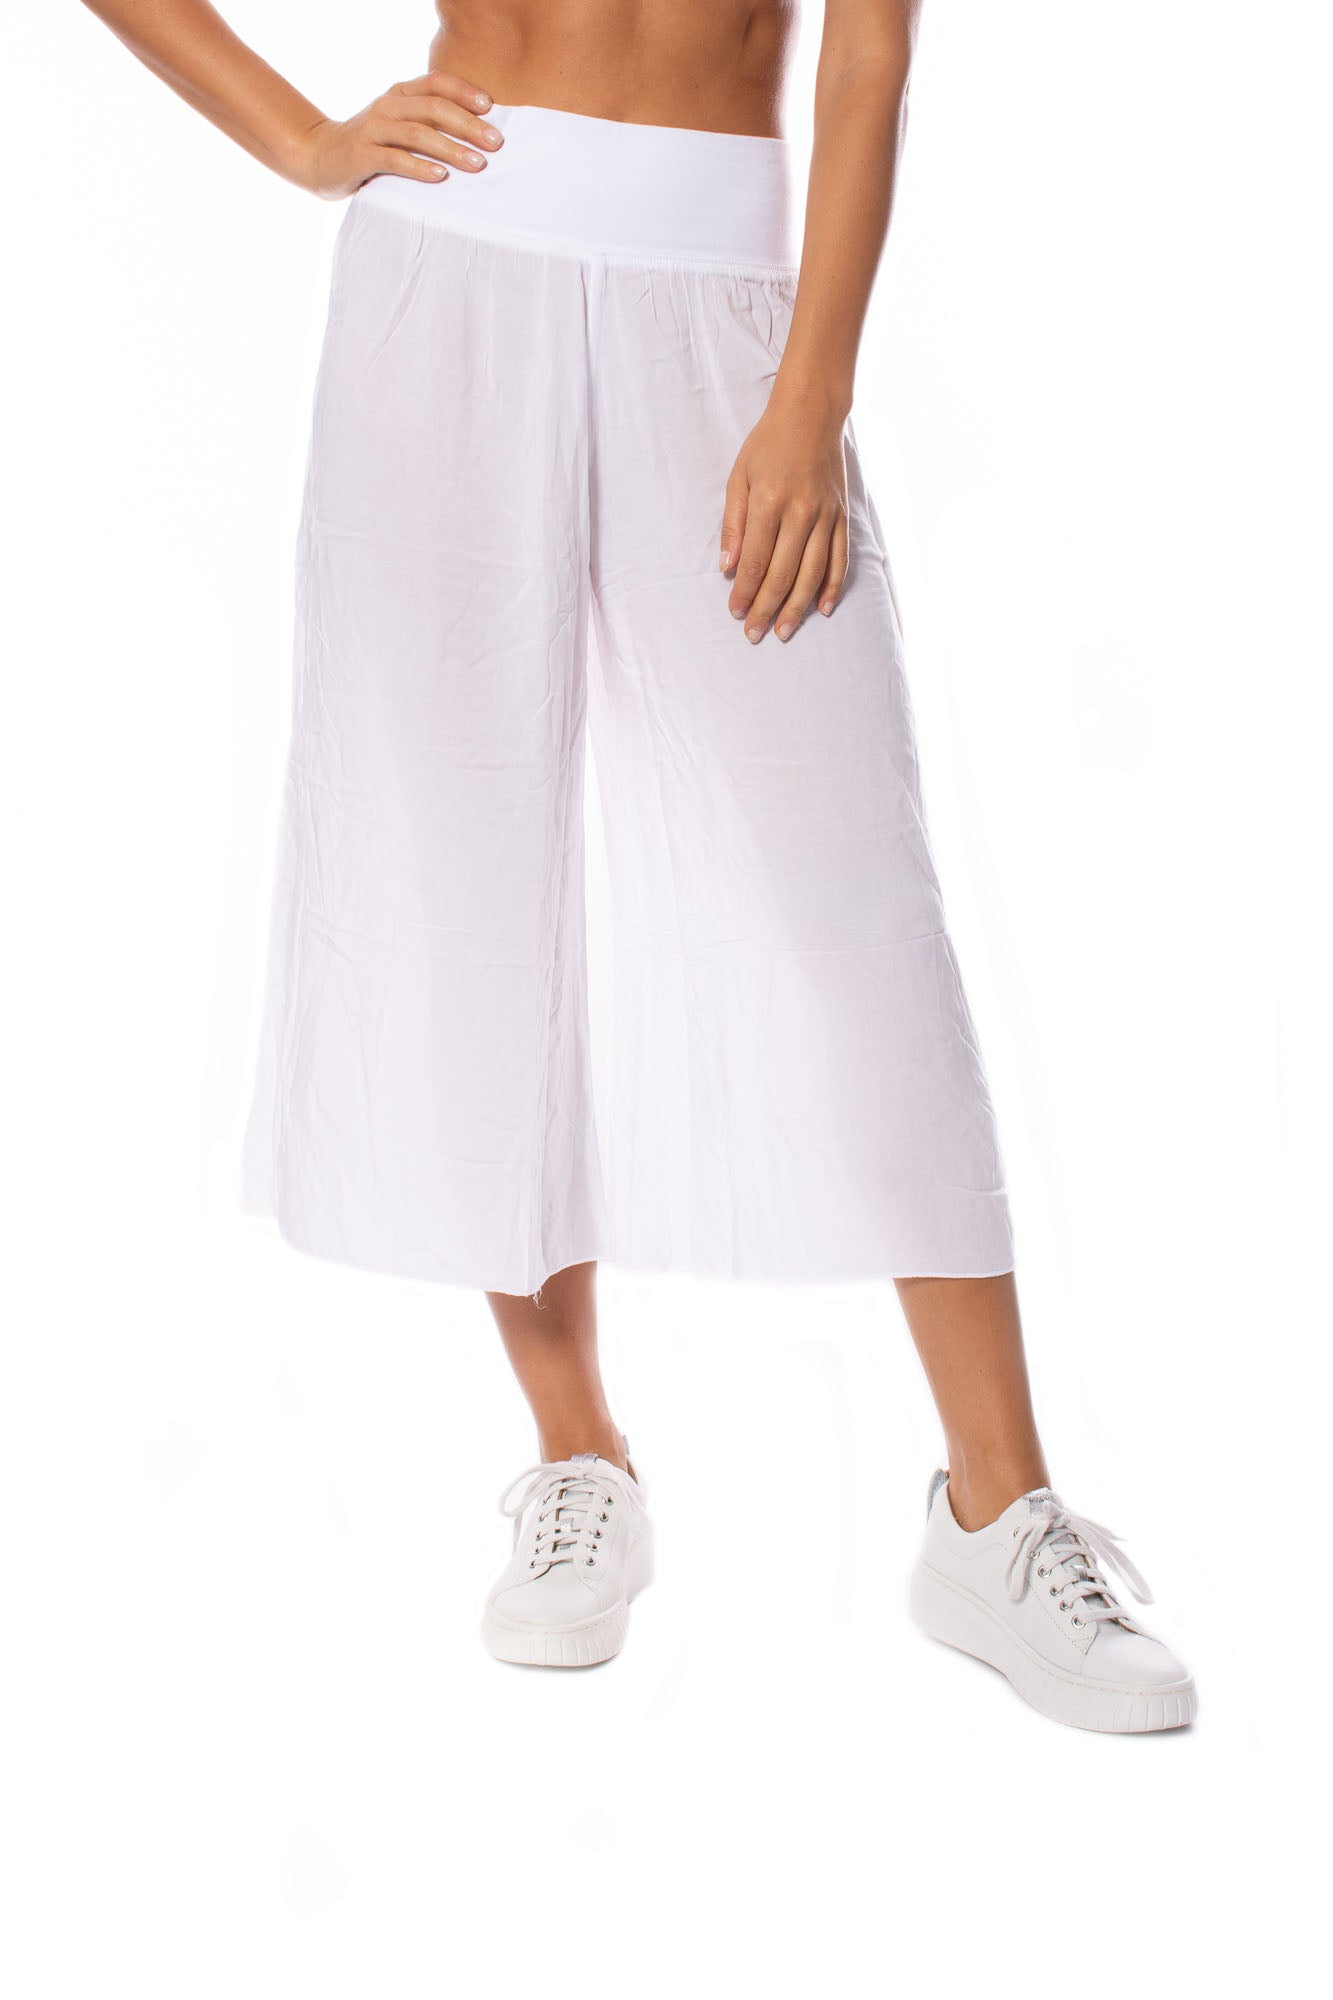 Hard Tail Forever - Ray/Voil Flat Waist Crop Pant (RV-38, White)